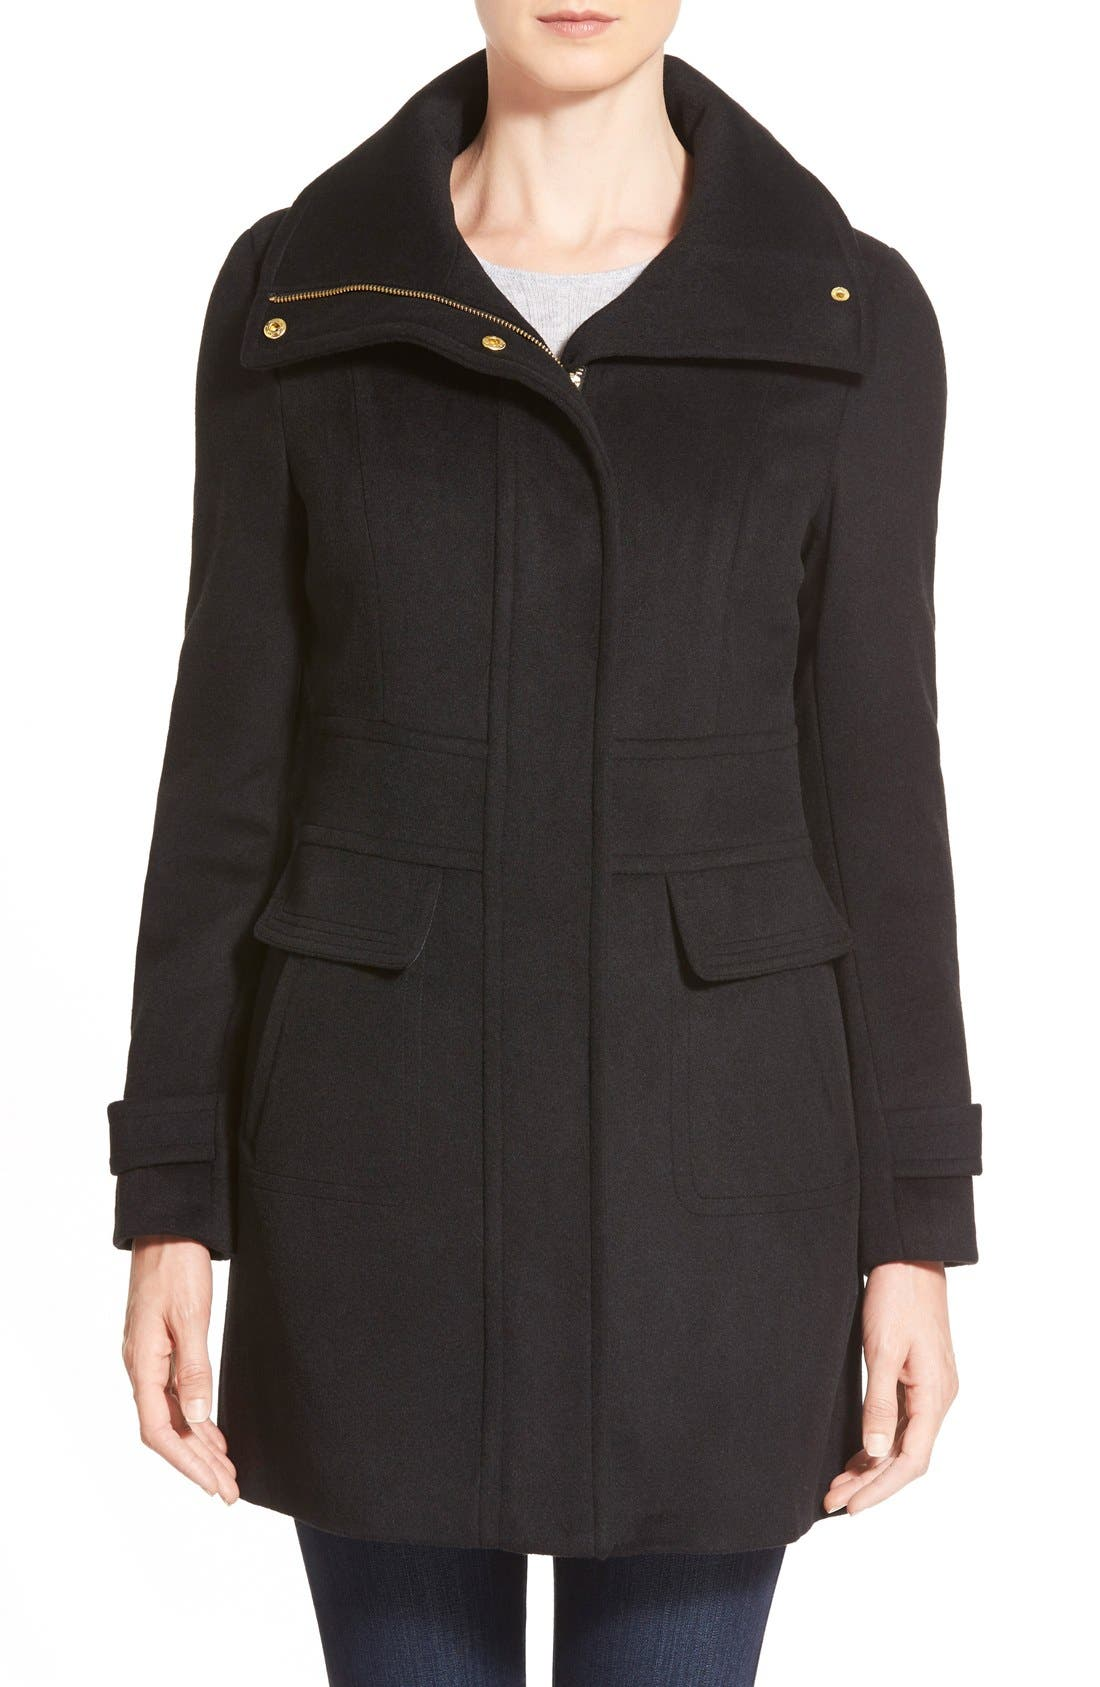 Alternate Image 1 Selected - Cole Haan Signature Stand Collar Wool Blend Coat